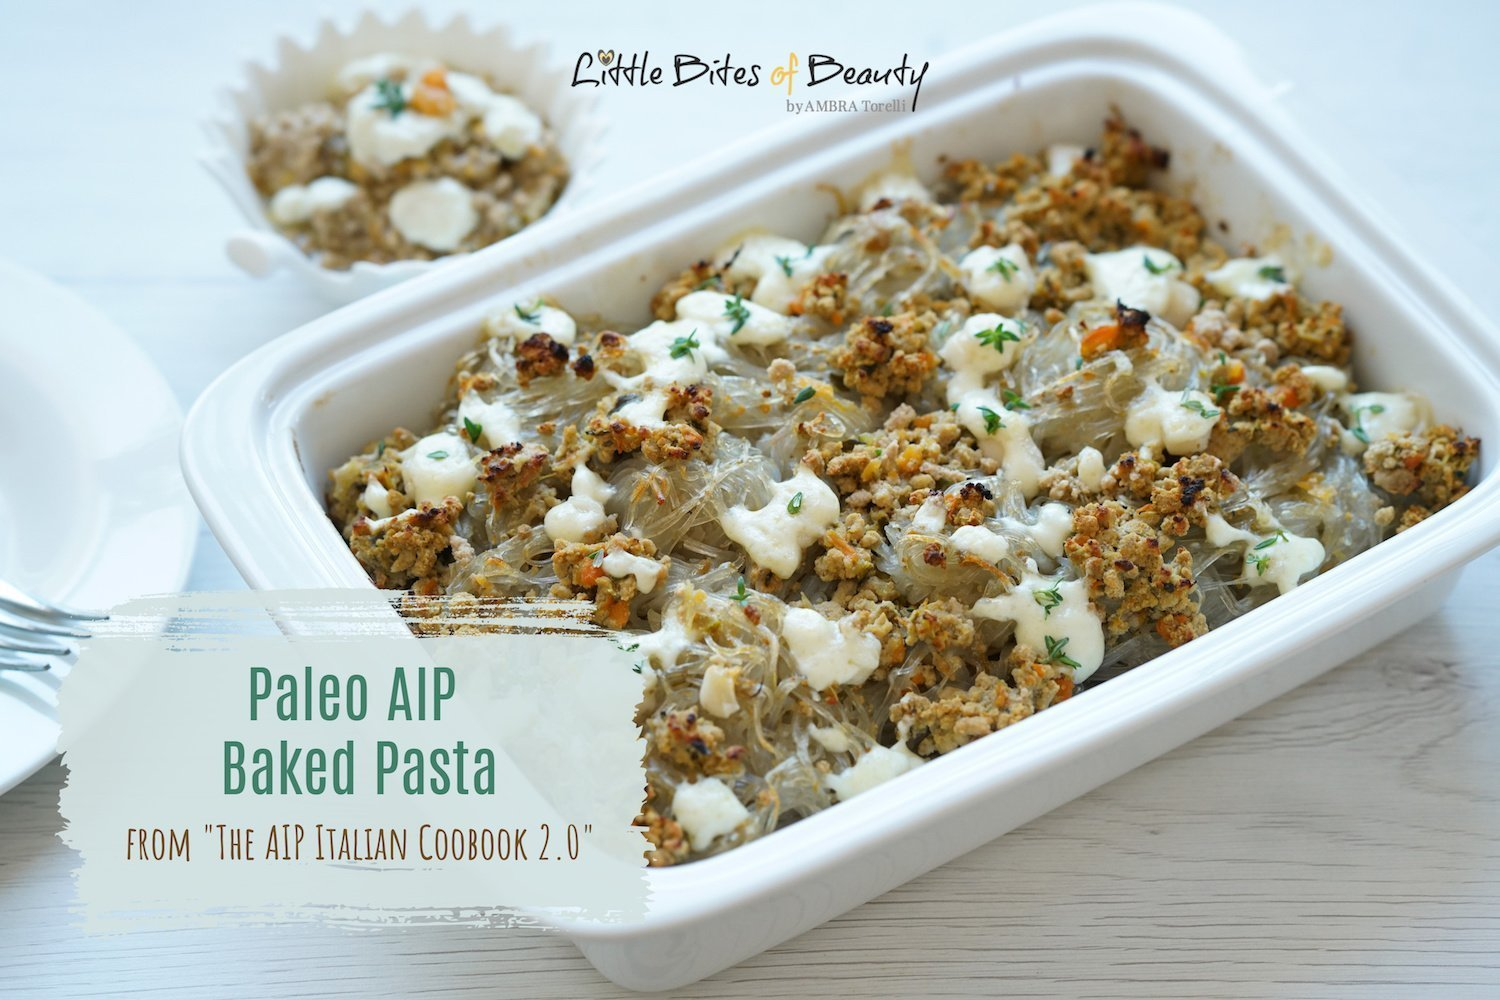 AIP Italian Food - Paleo AIP Baked Pasta from The AIP Italian Cookbook